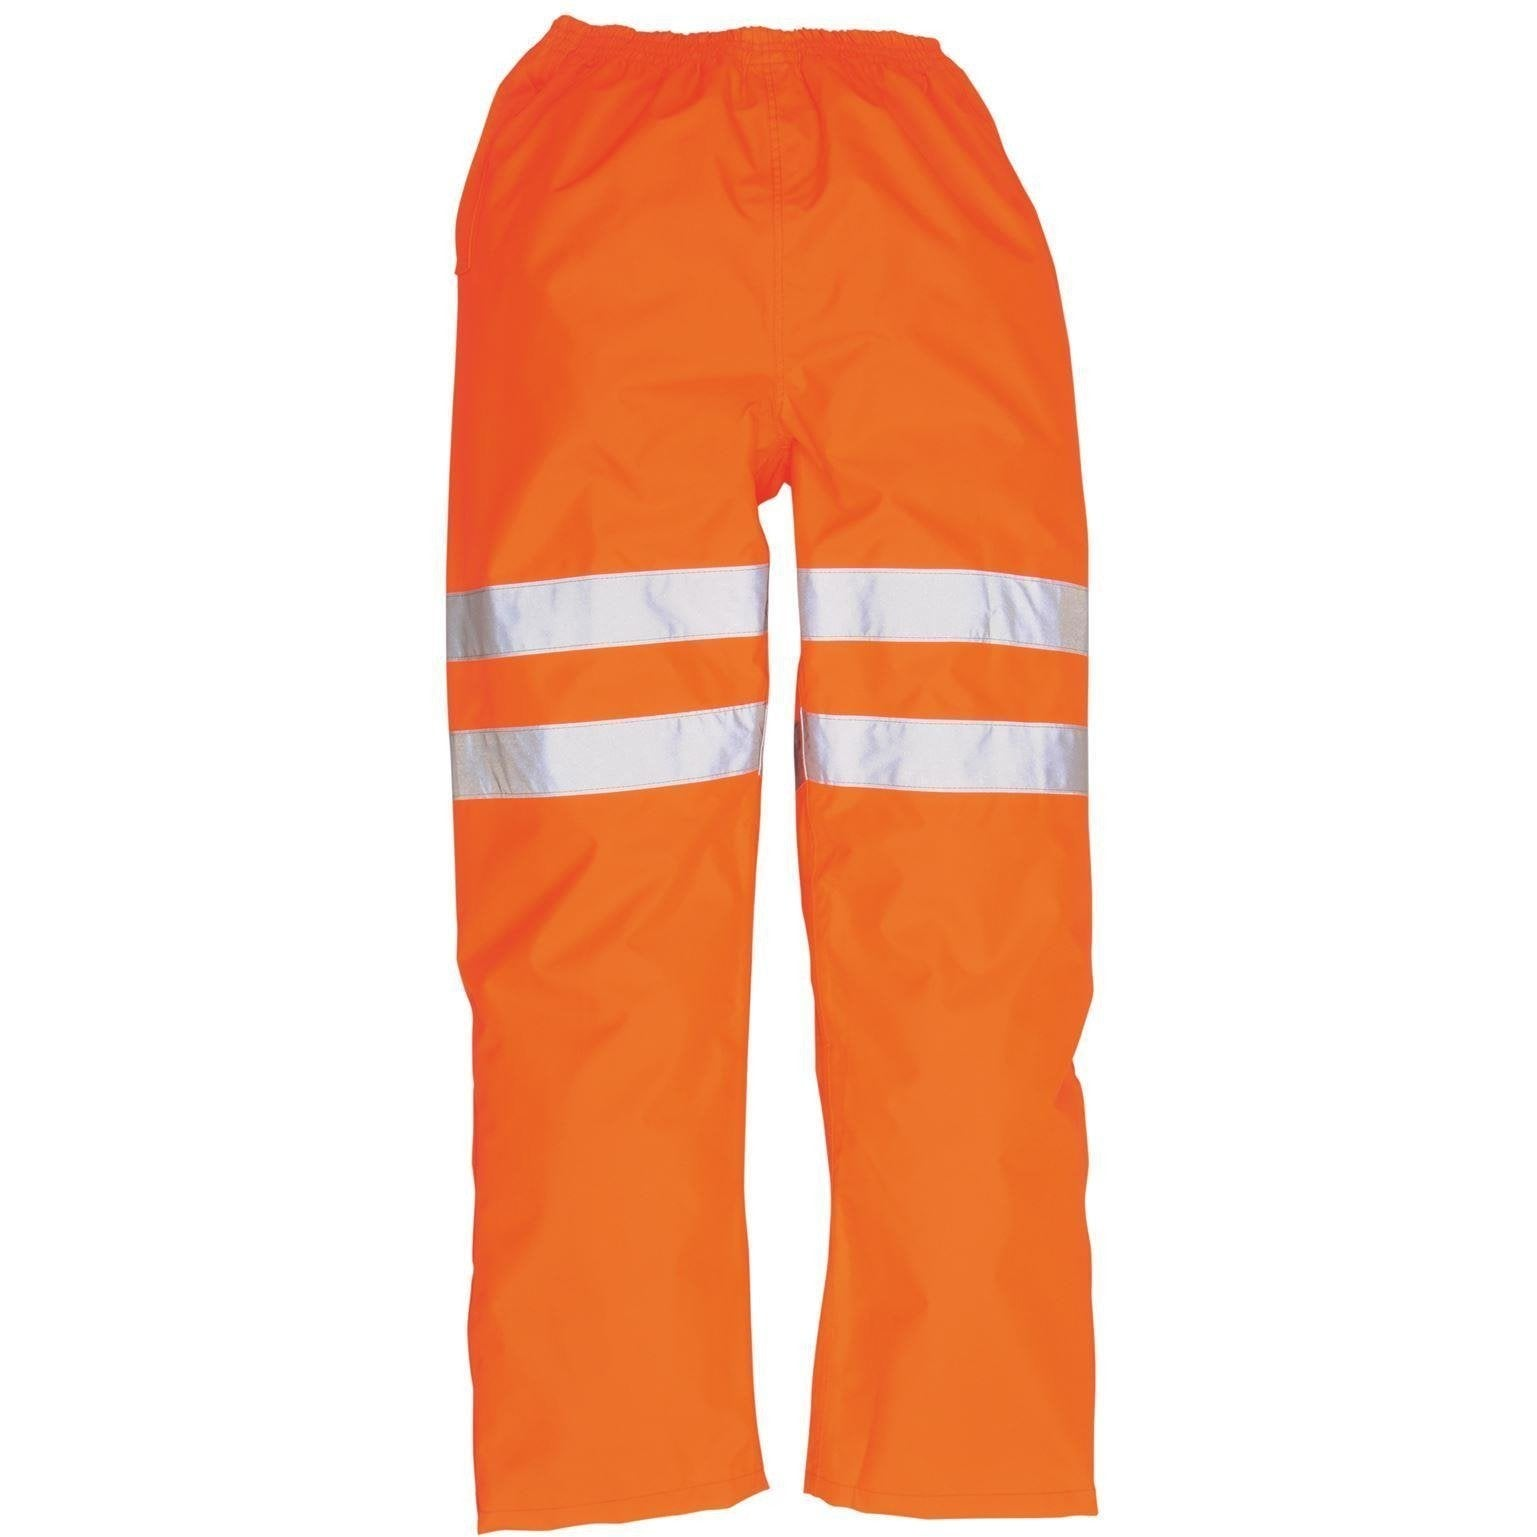 Portwest Hi-Vis Traffic Trousers RT31 - reid outdoors